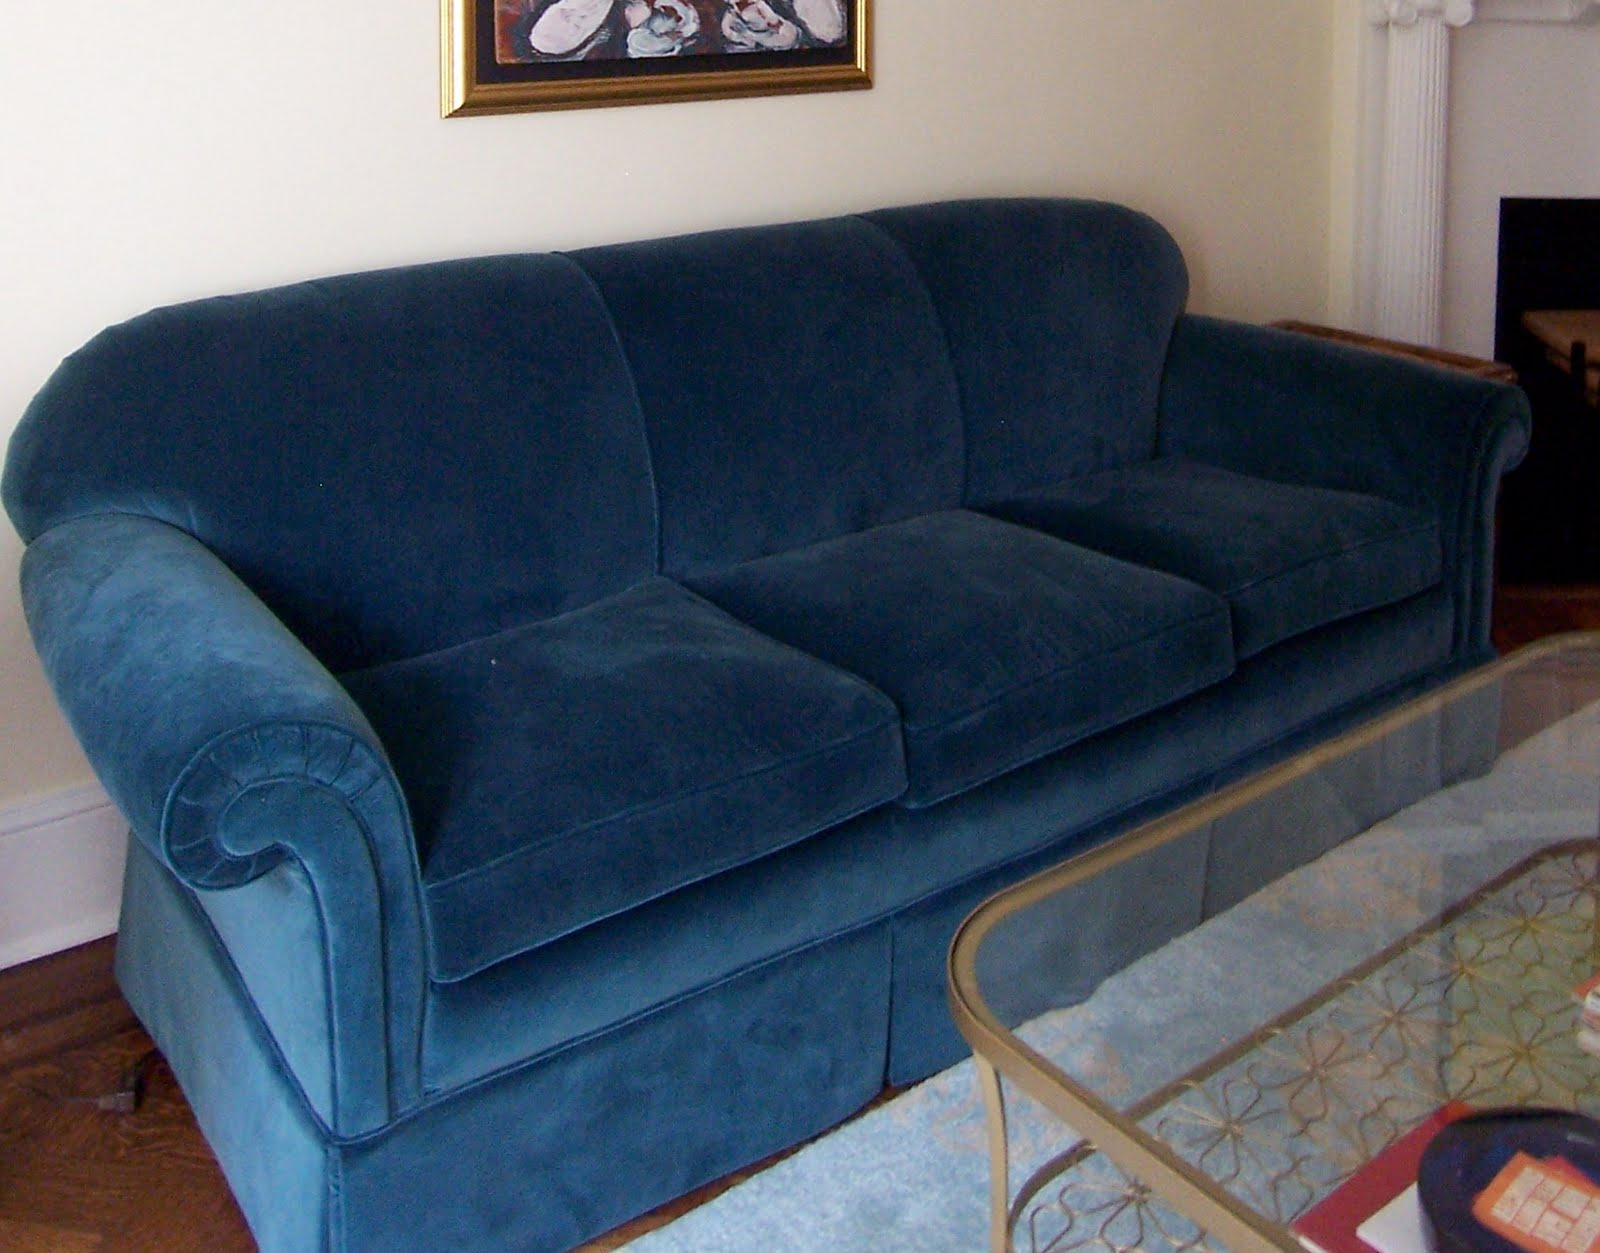 What does it cost to reupholster a sofa sofa furniture 22 Cost to reupholster loveseat